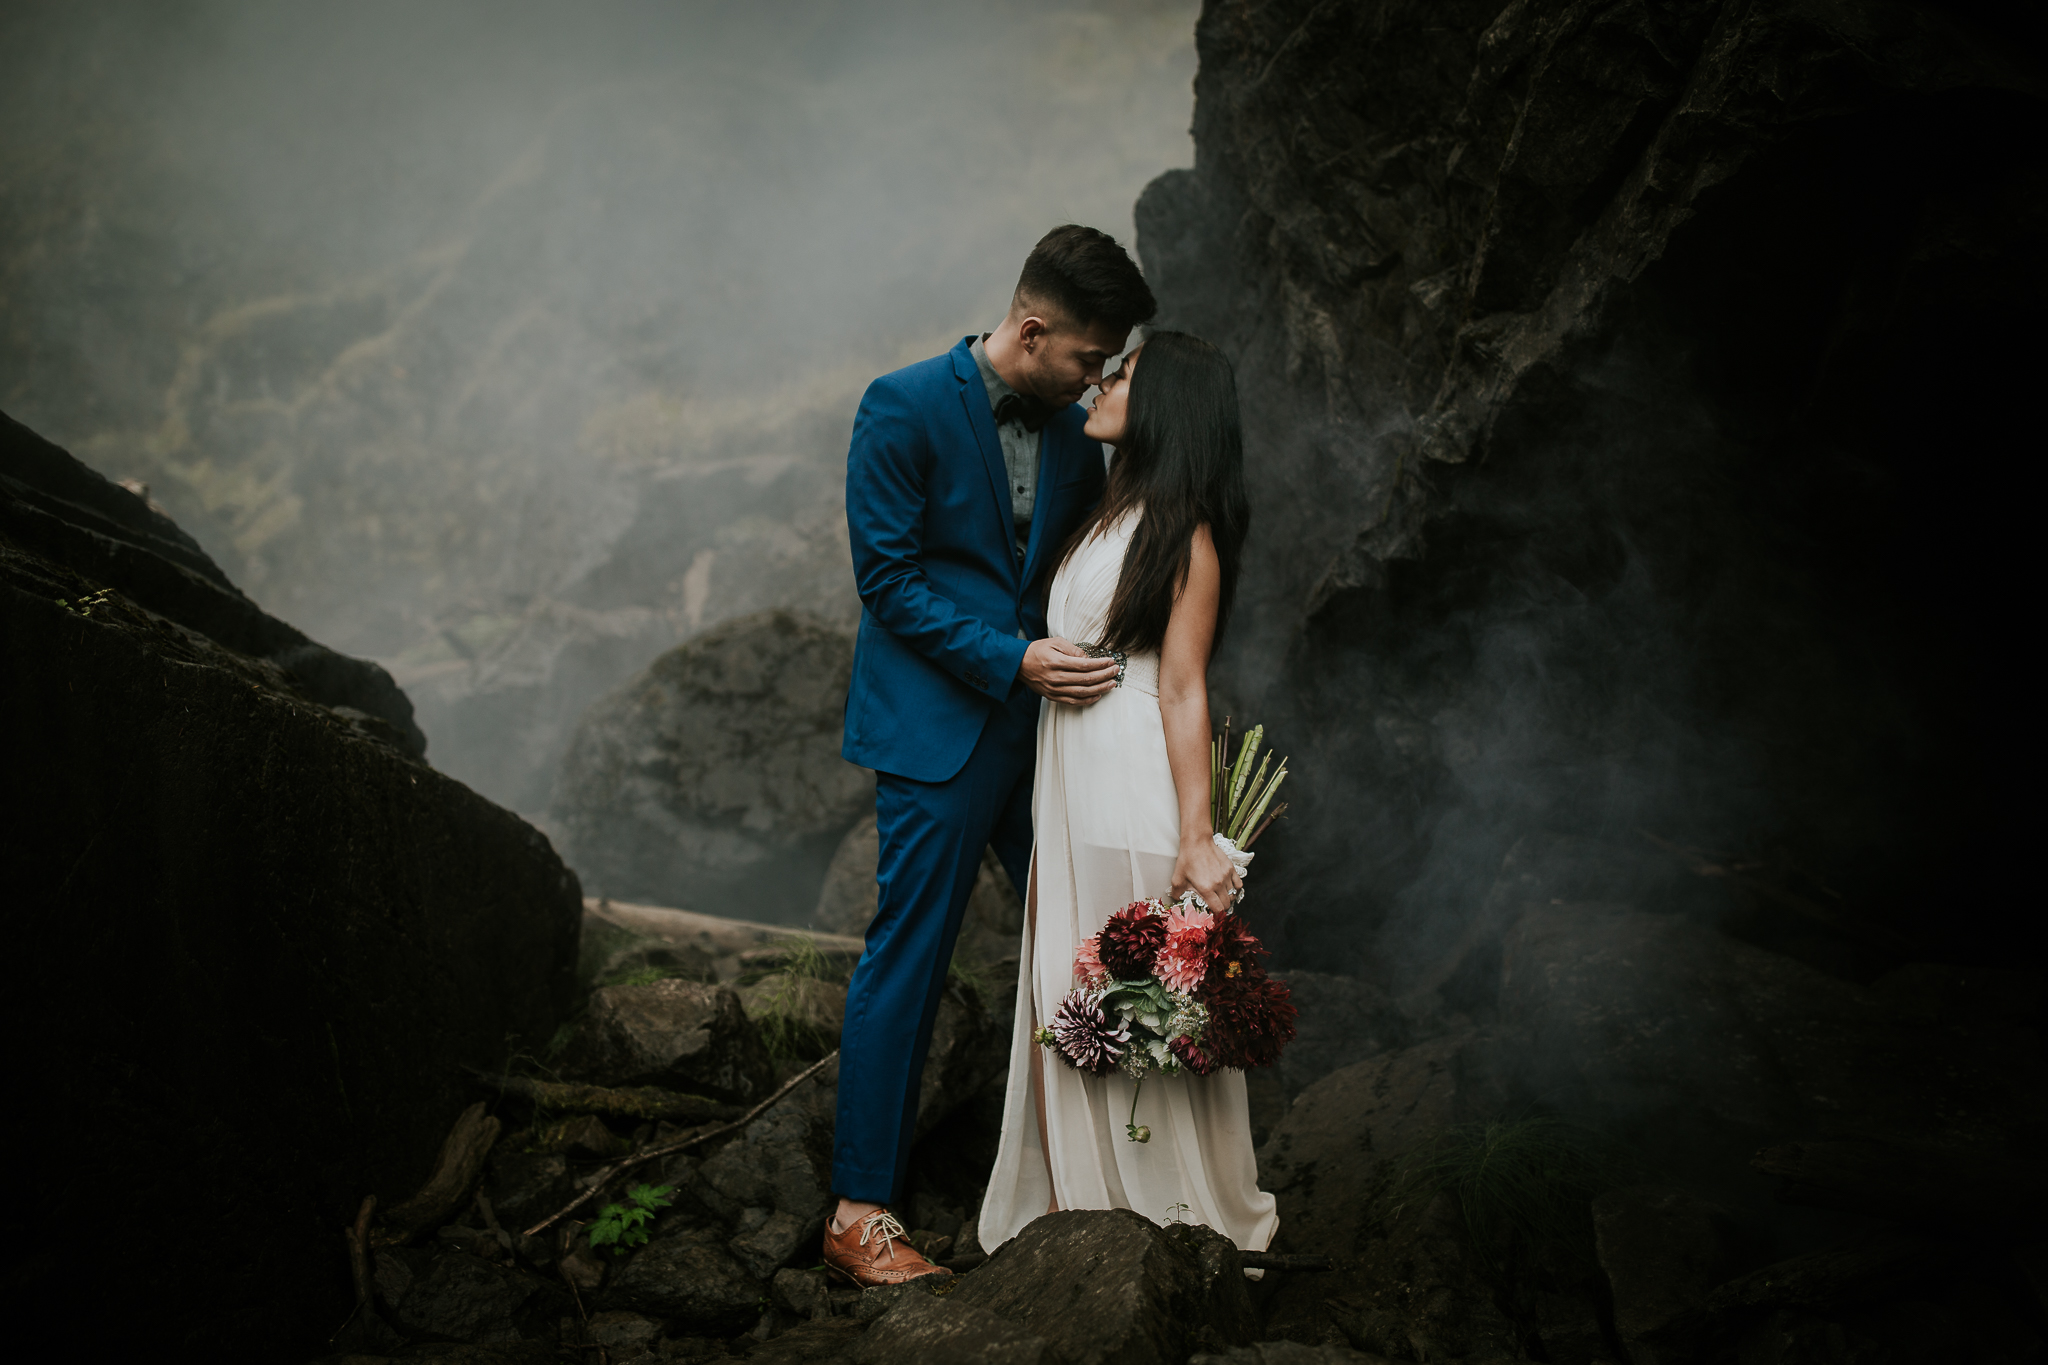 Bride and groom embracing in front of black rocks with mist near waterfall